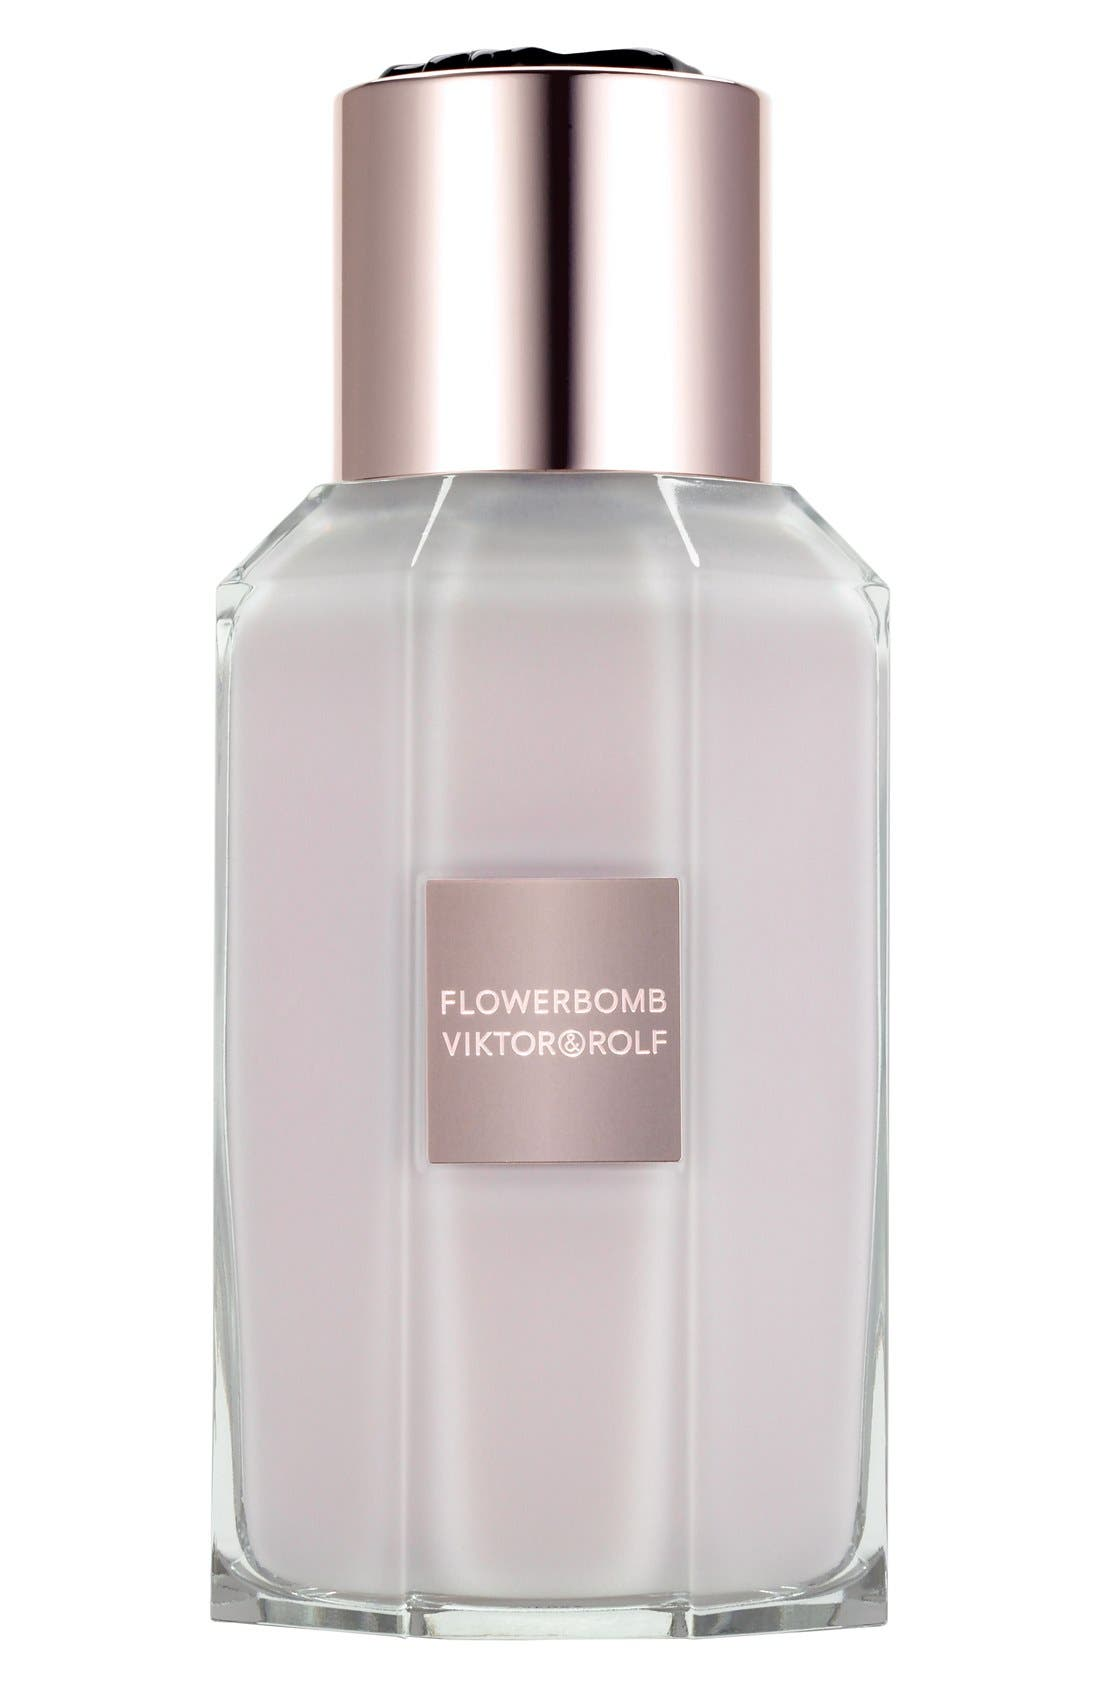 Viktor&Rolf 'Flowerbomb' Foaming Bath